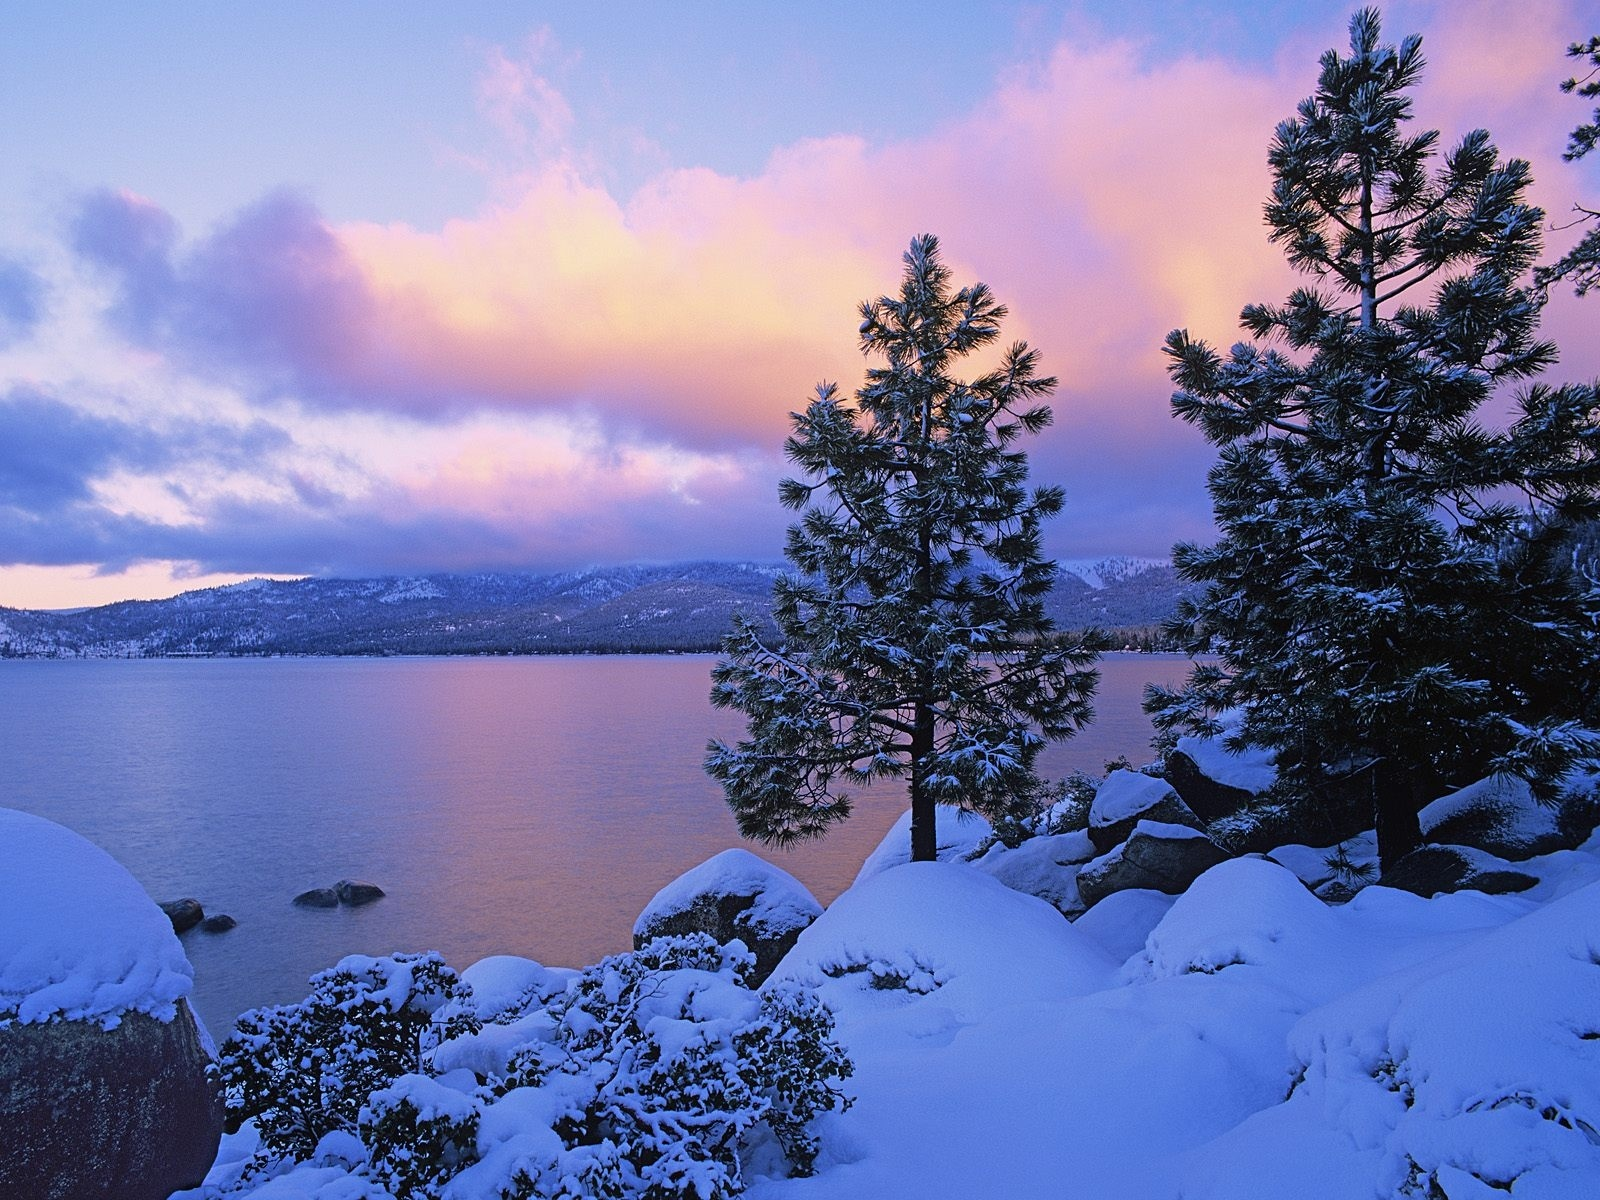 Good   Wallpaper Home Screen Winter - lake_and_snow_nature_wallpaper-1600x1200  Collection_957618.jpg